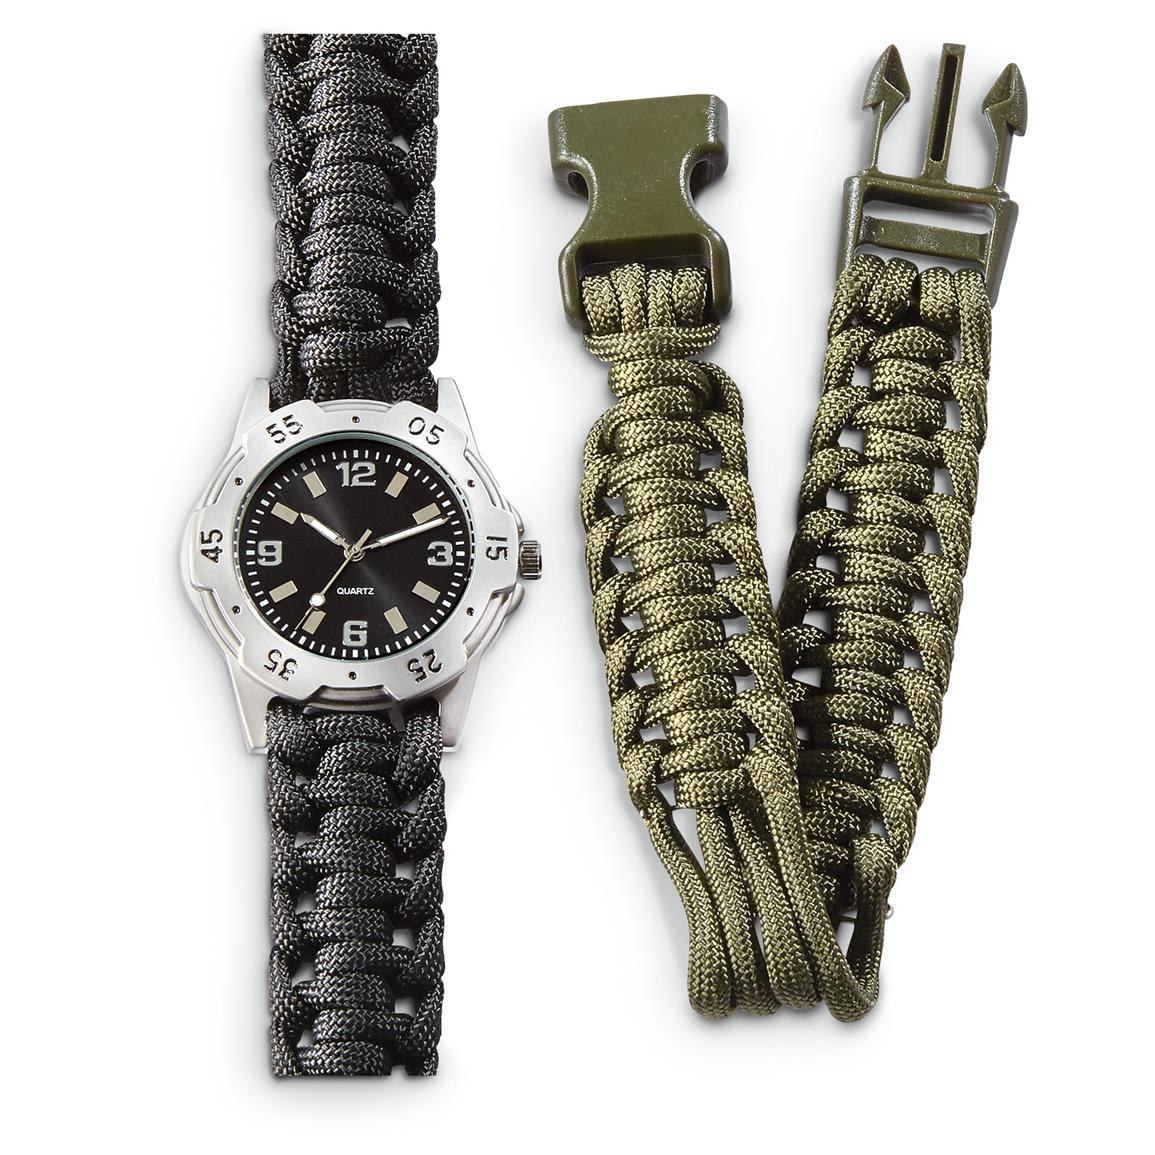 Mil-Tec Military Style Watch with 2 Paracord Bands